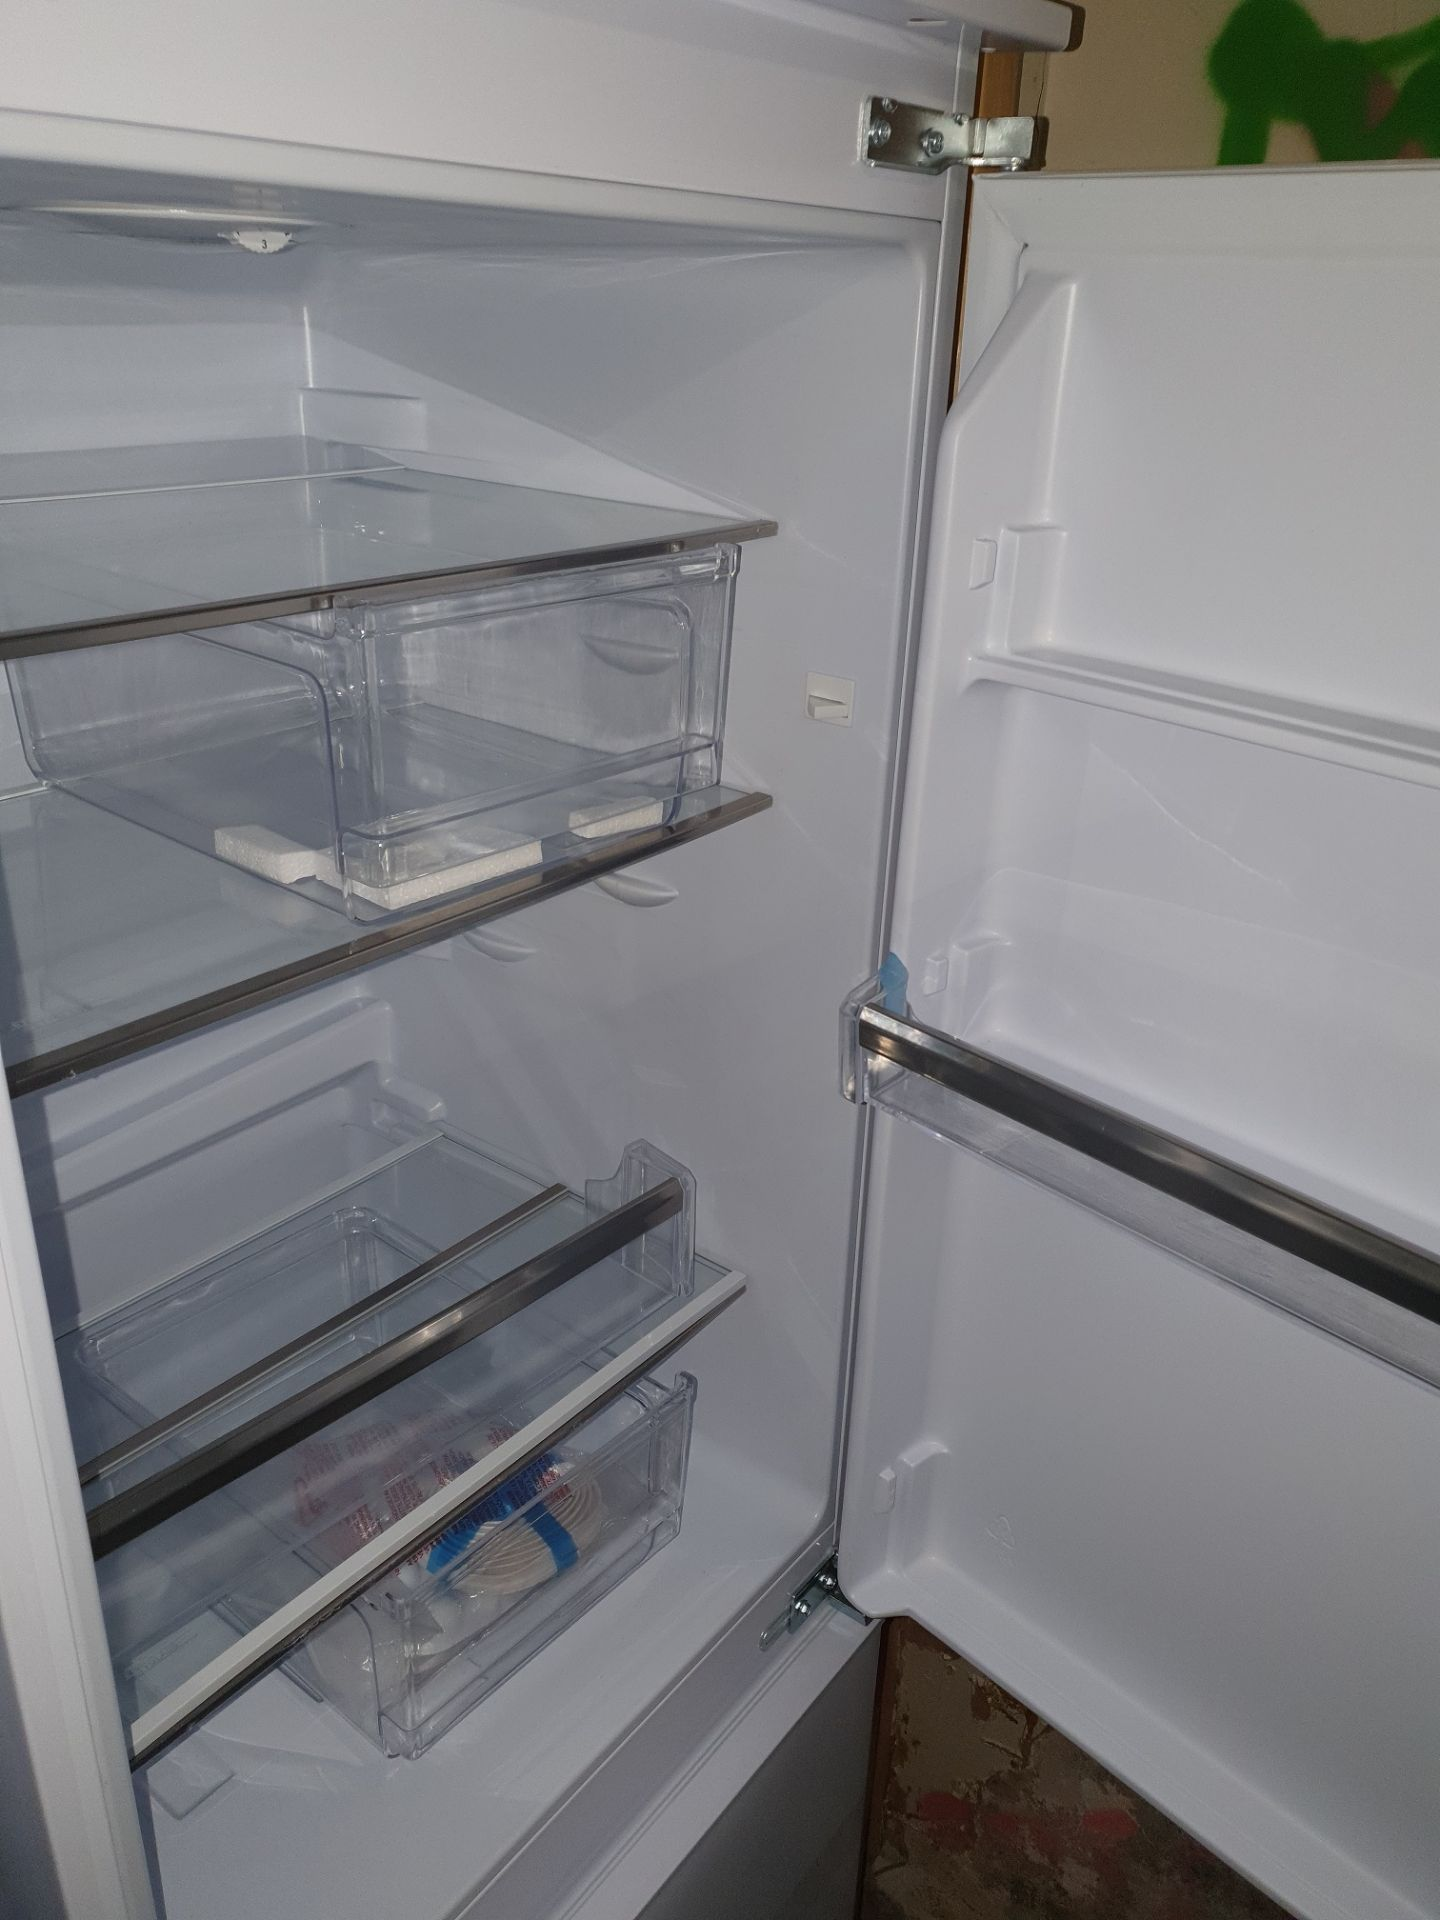 NEW/GRADED AND UNPACKAGED Prima Plus PRRF700 Built In Frost Free Fridge Freezer (Brand new slight - Image 13 of 14